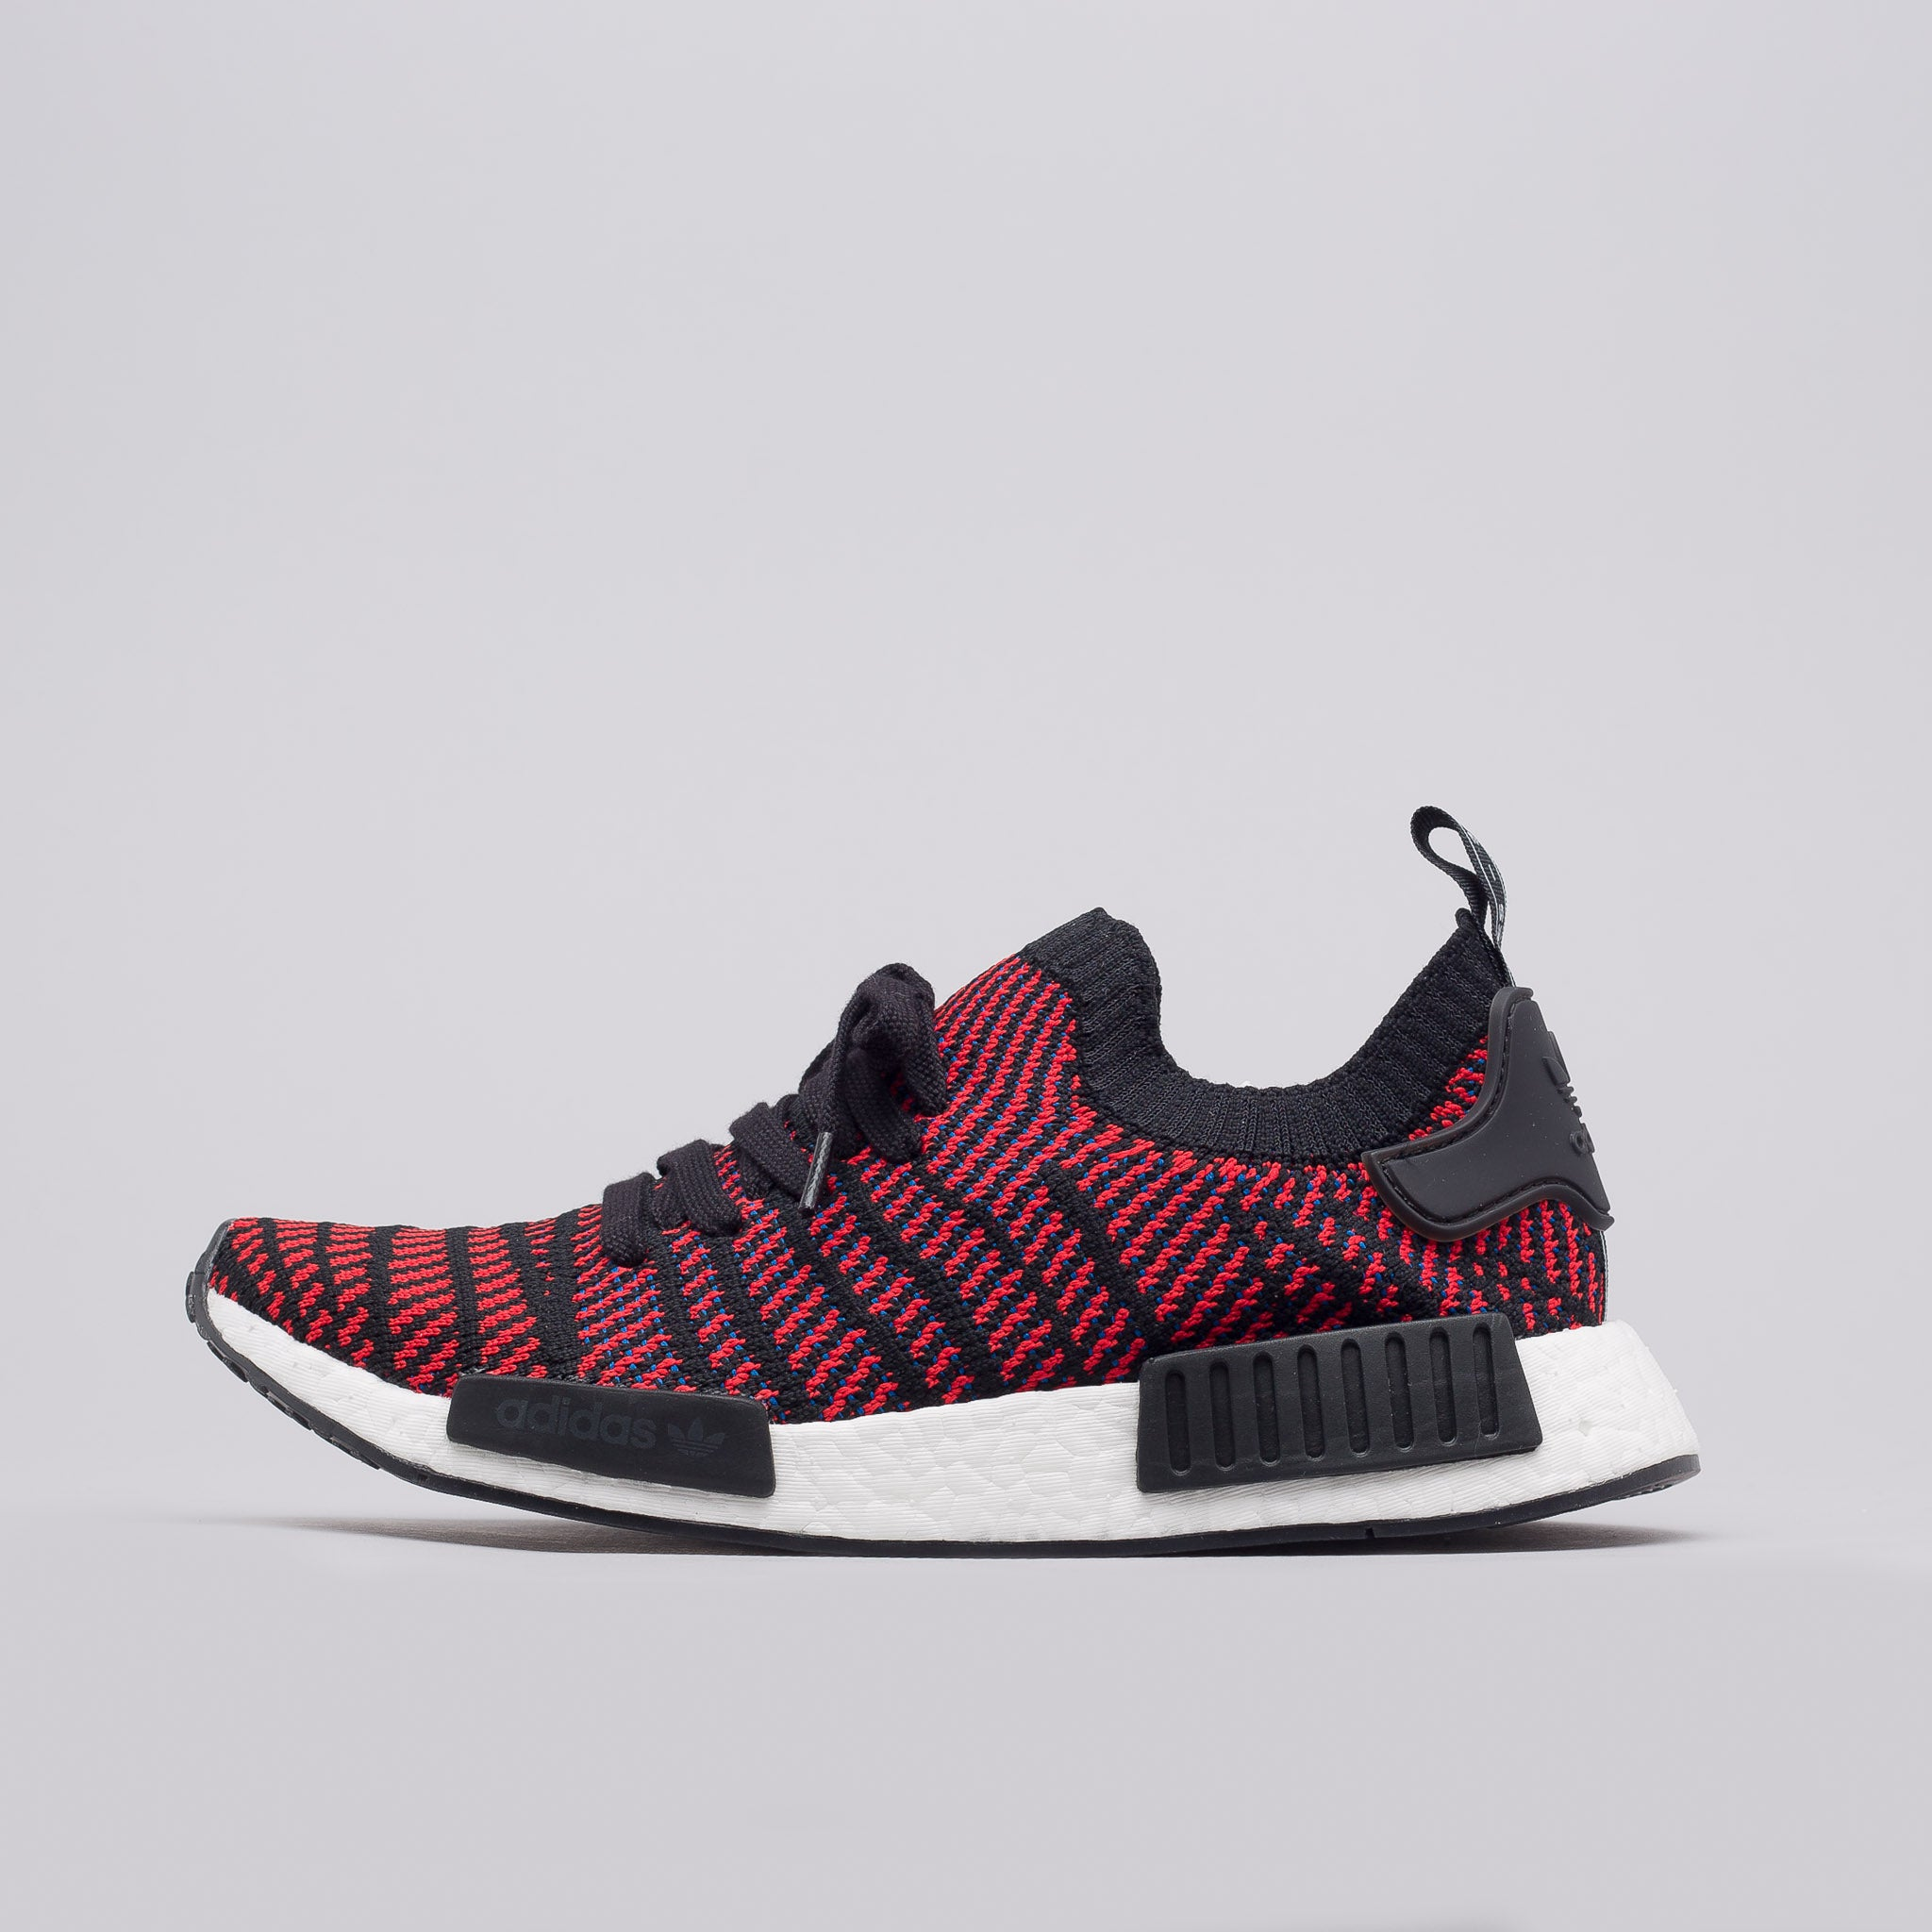 Adidas NMD R1 Pink Glitch Women's Shoes Australia